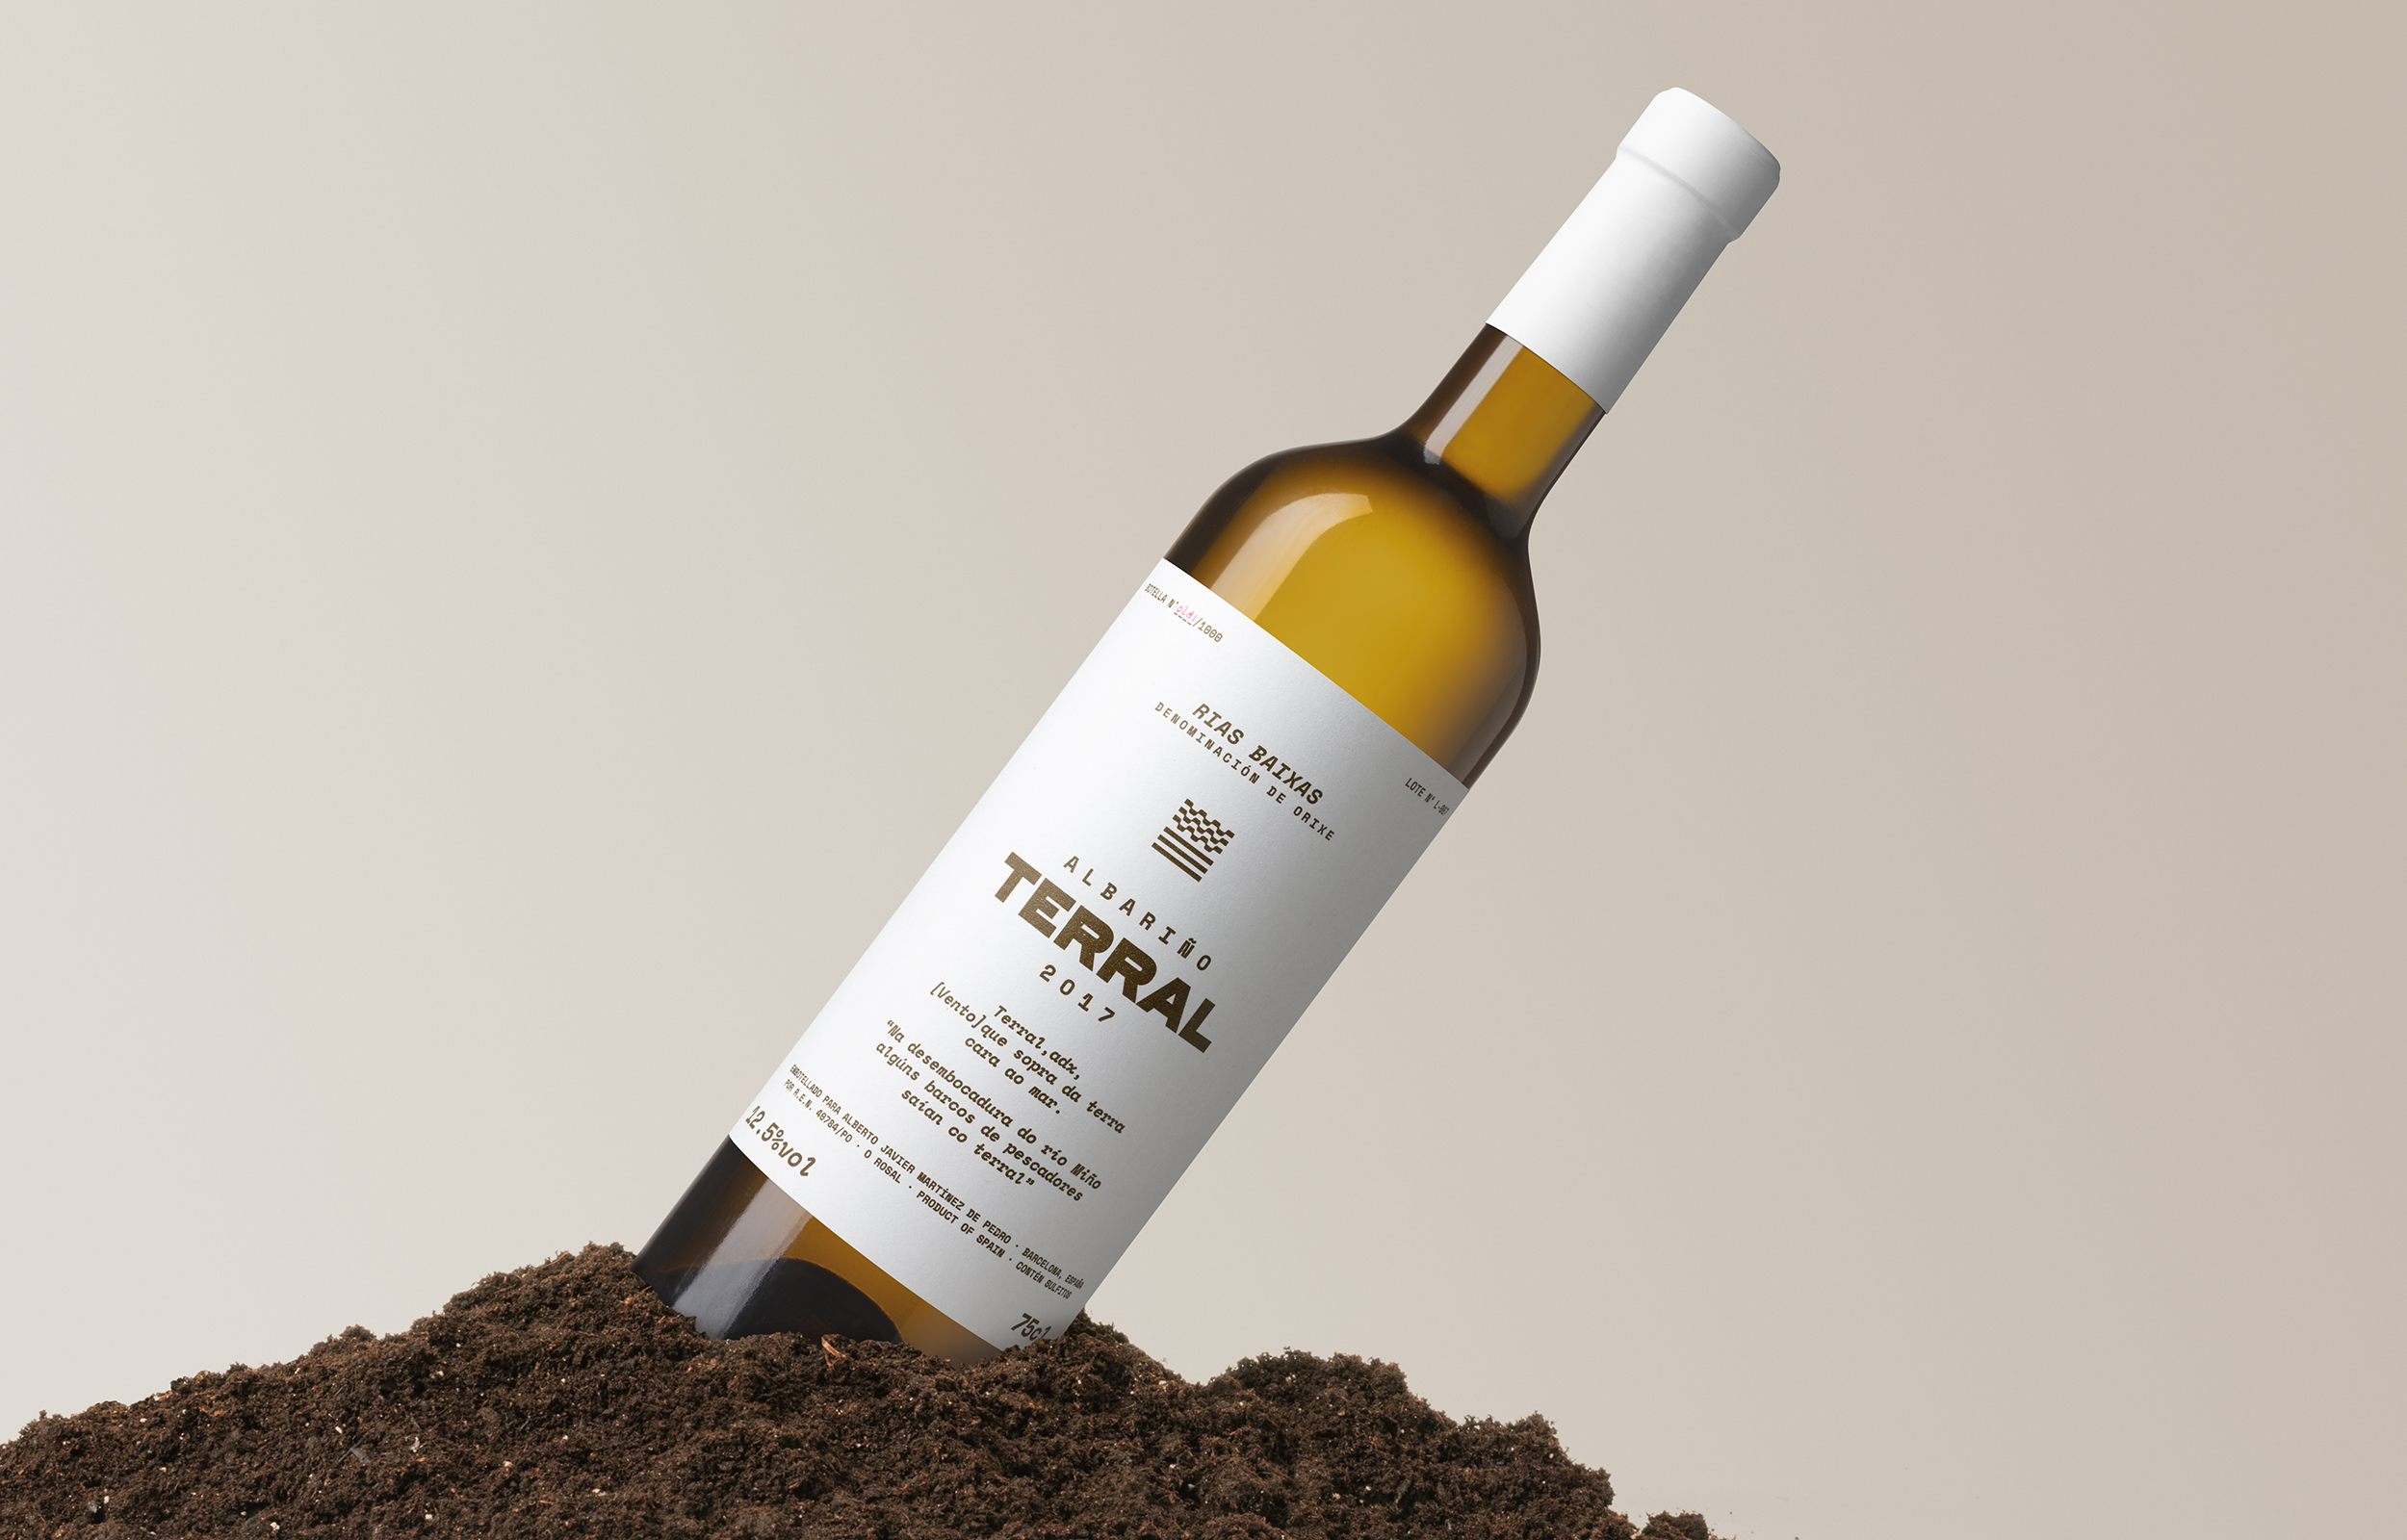 Diferente Creates Naming and Packaging for Terral, an Exquisite Wine Produced in Galicia